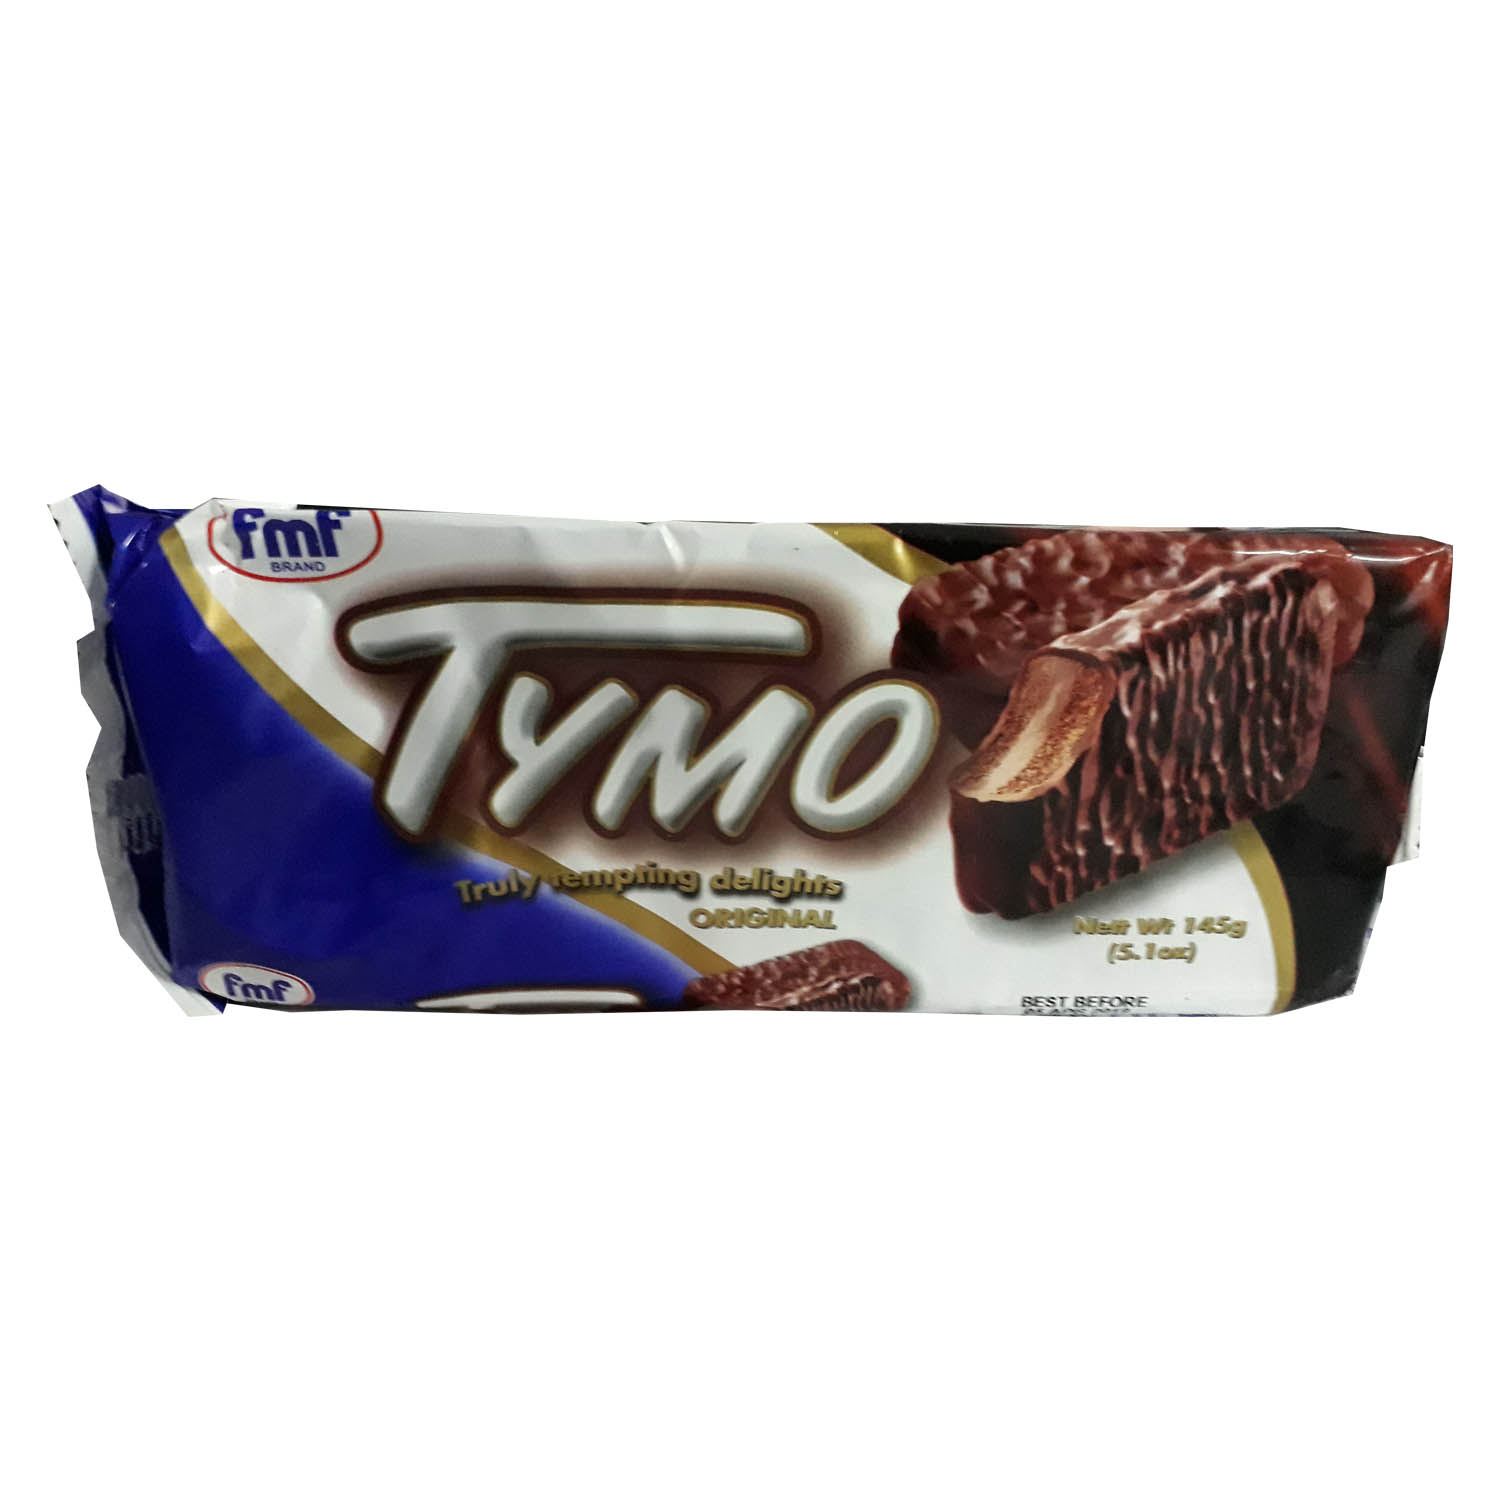 FMF Tymo Chocolate Coated Biscuit - Original 145g